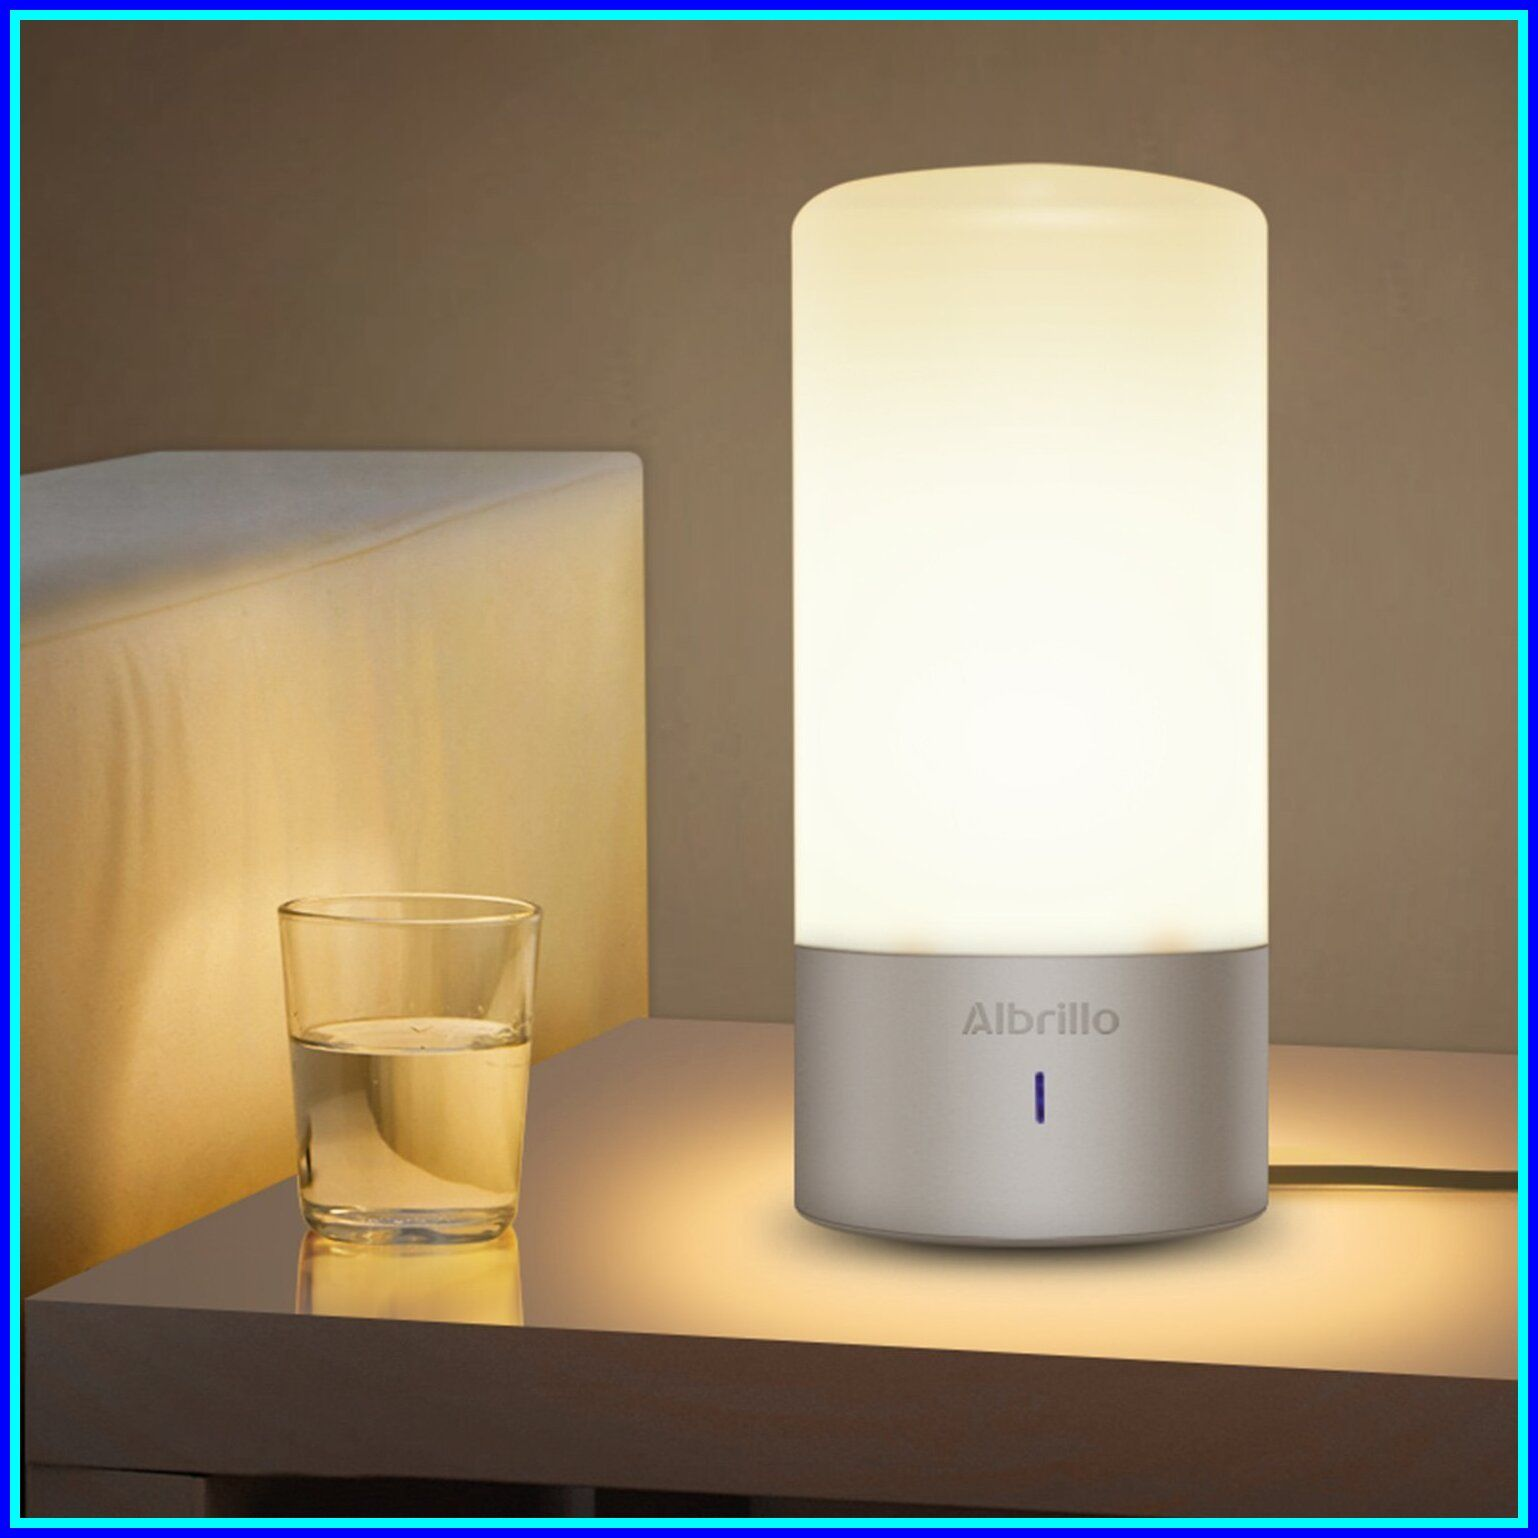 59 reference of small bedroom nightstand lamp in 2020